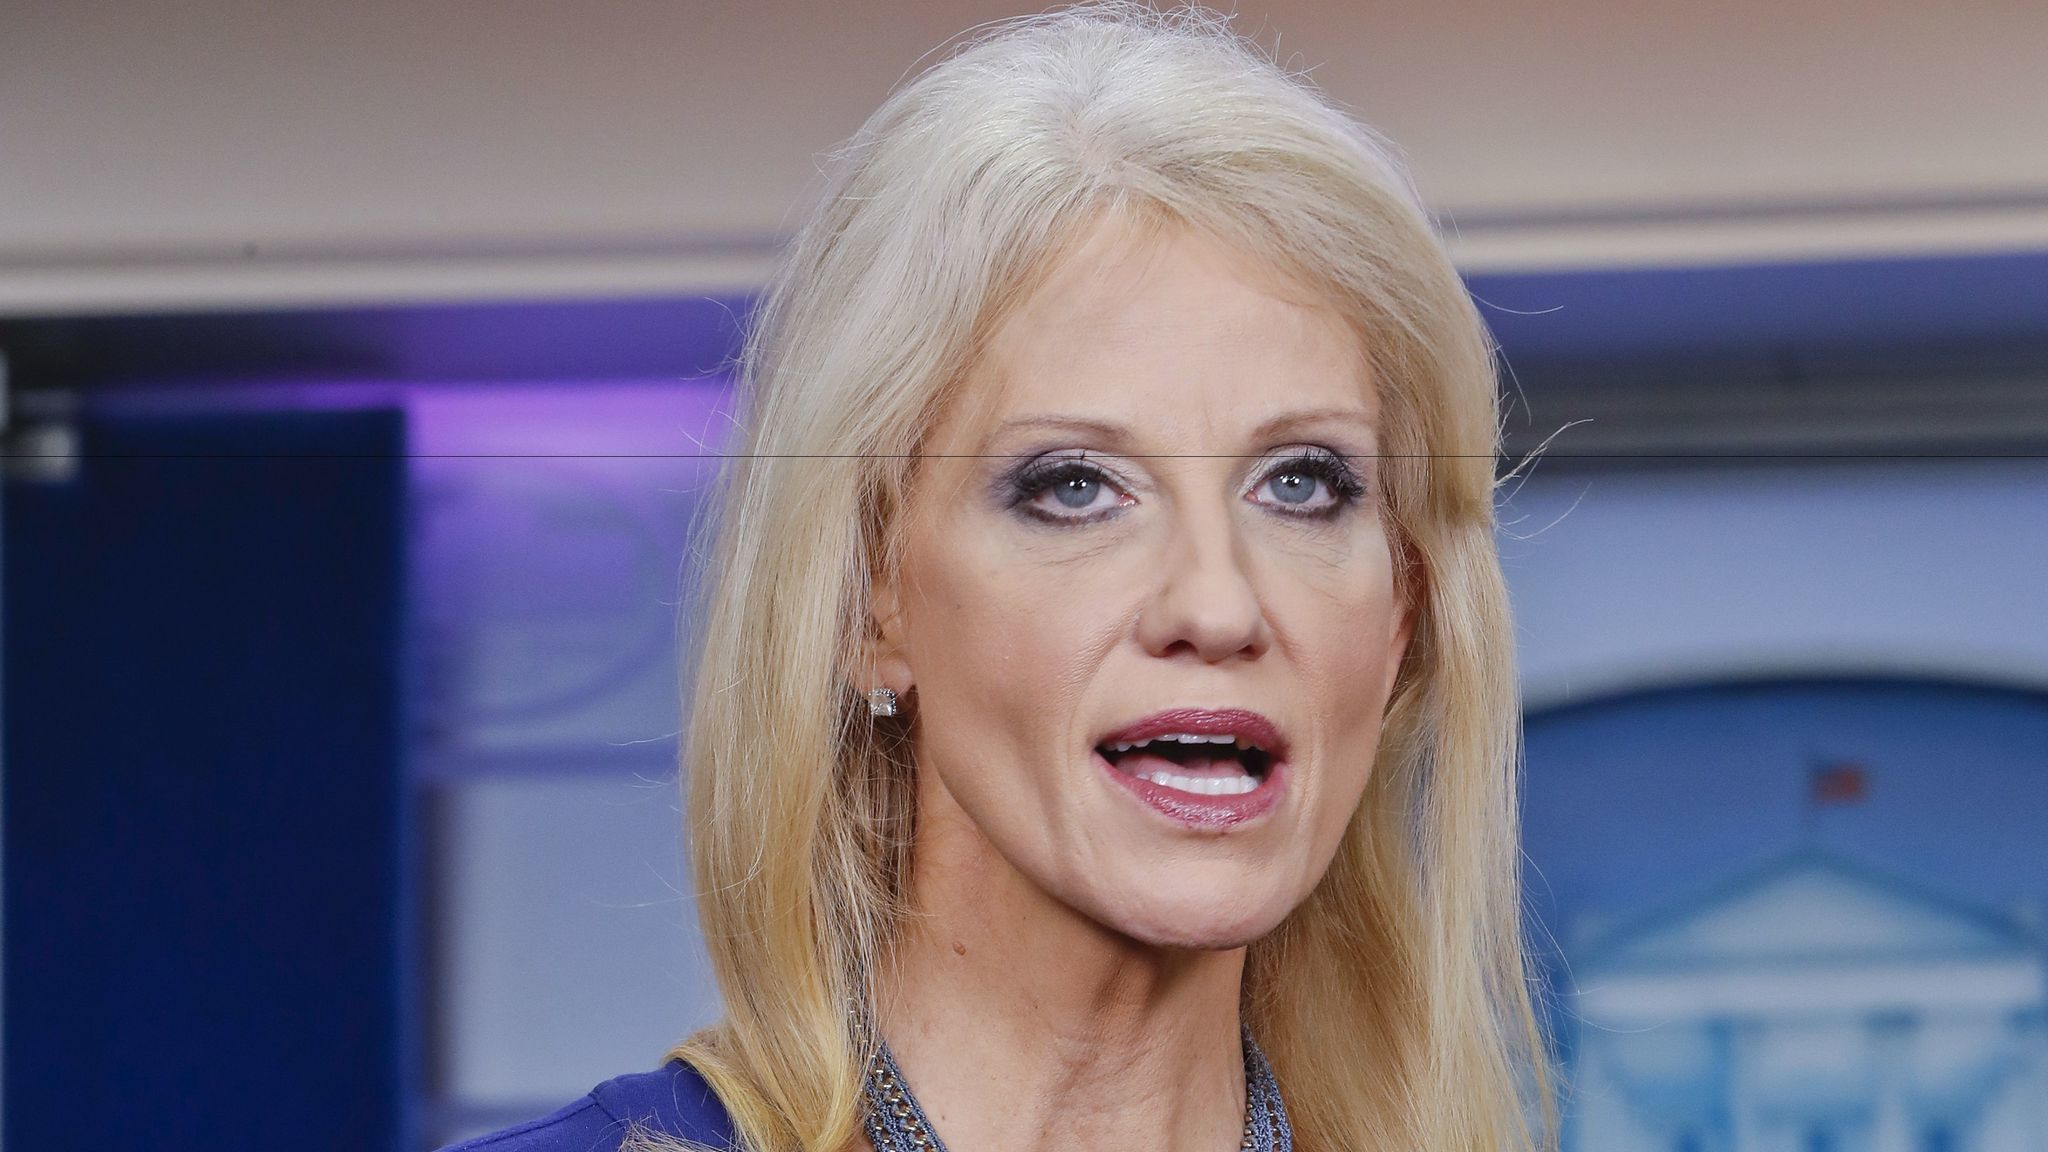 Counselor to the President Kellyanne Conway brazenly supported the Ivanka Trump brand during a television appearance on Fox, which was recorded from the White House.